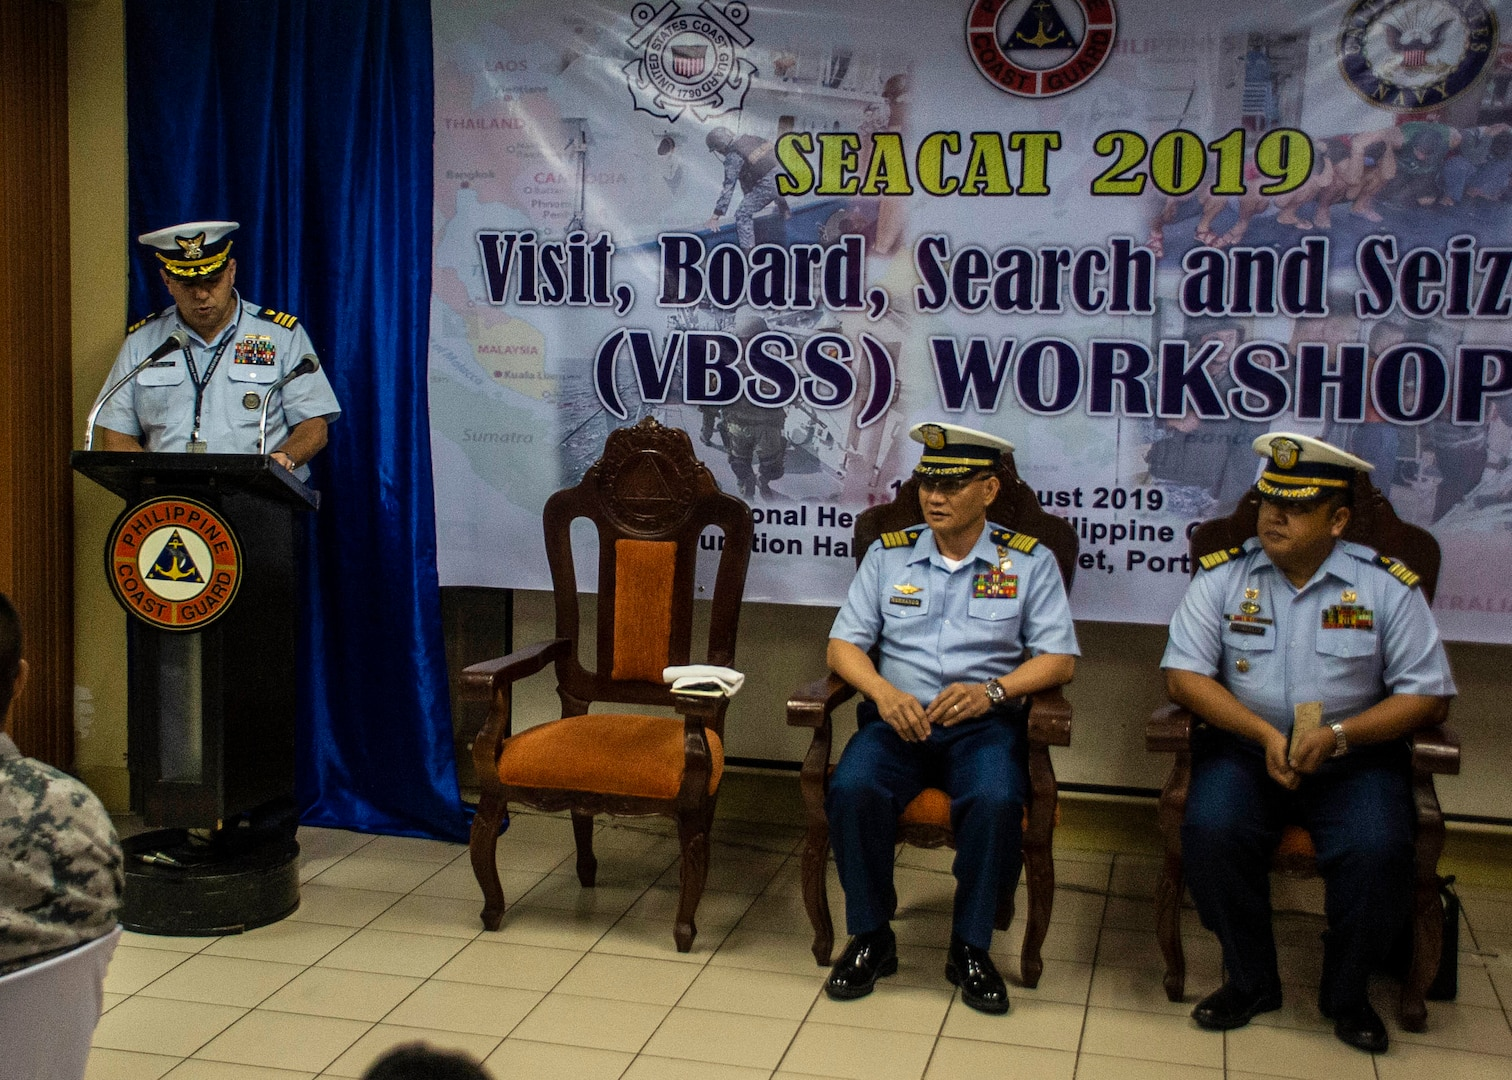 190819-N-FV739-0019 MANILA, Philippines (Aug. 19, 2019) U.S. Coast Guard Cmdr. David Negron-Alicea, Defense Threat Reduction Agency maritime advisor for U.S. Embassy Manila, delivers keynote remarks during the visit, board, search and seizure (VBSS) workshop as part of Southeast Asia Cooperation and Training (SEACAT) 2019 at the Philippine Coast Guard Headquarters in Manila. This year marks the 18th iteration of SEACAT, which is designed to enhance maritime security skills by highlighting the value of information sharing and multilateral coordination. (U.S. Navy photo by Mass Communication Specialist 2nd Class Christopher A. Veloicaza/Released)